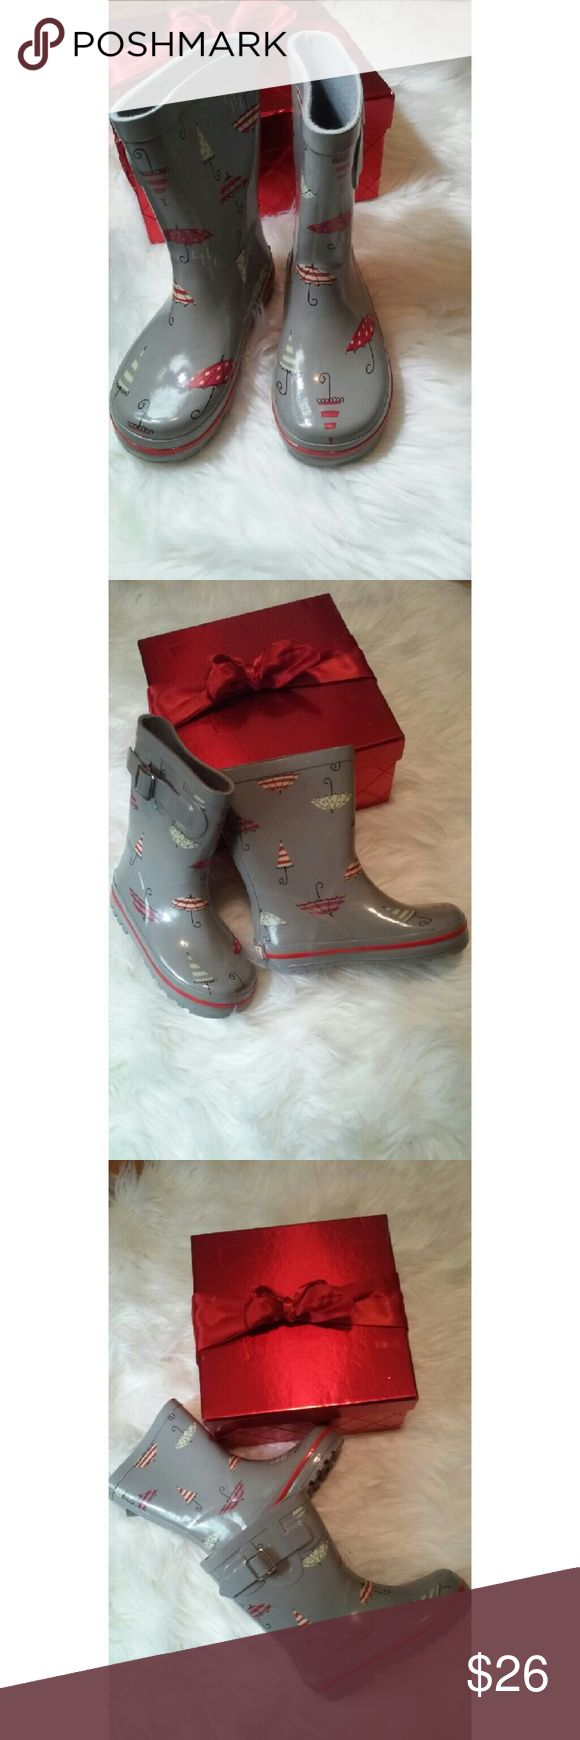 Super Cute Girls water boots -Cute umbrella designs on exterior -Faux buckle -polka dots and stripes -red, white, Gray Elle Shoes Rain & Snow Boots